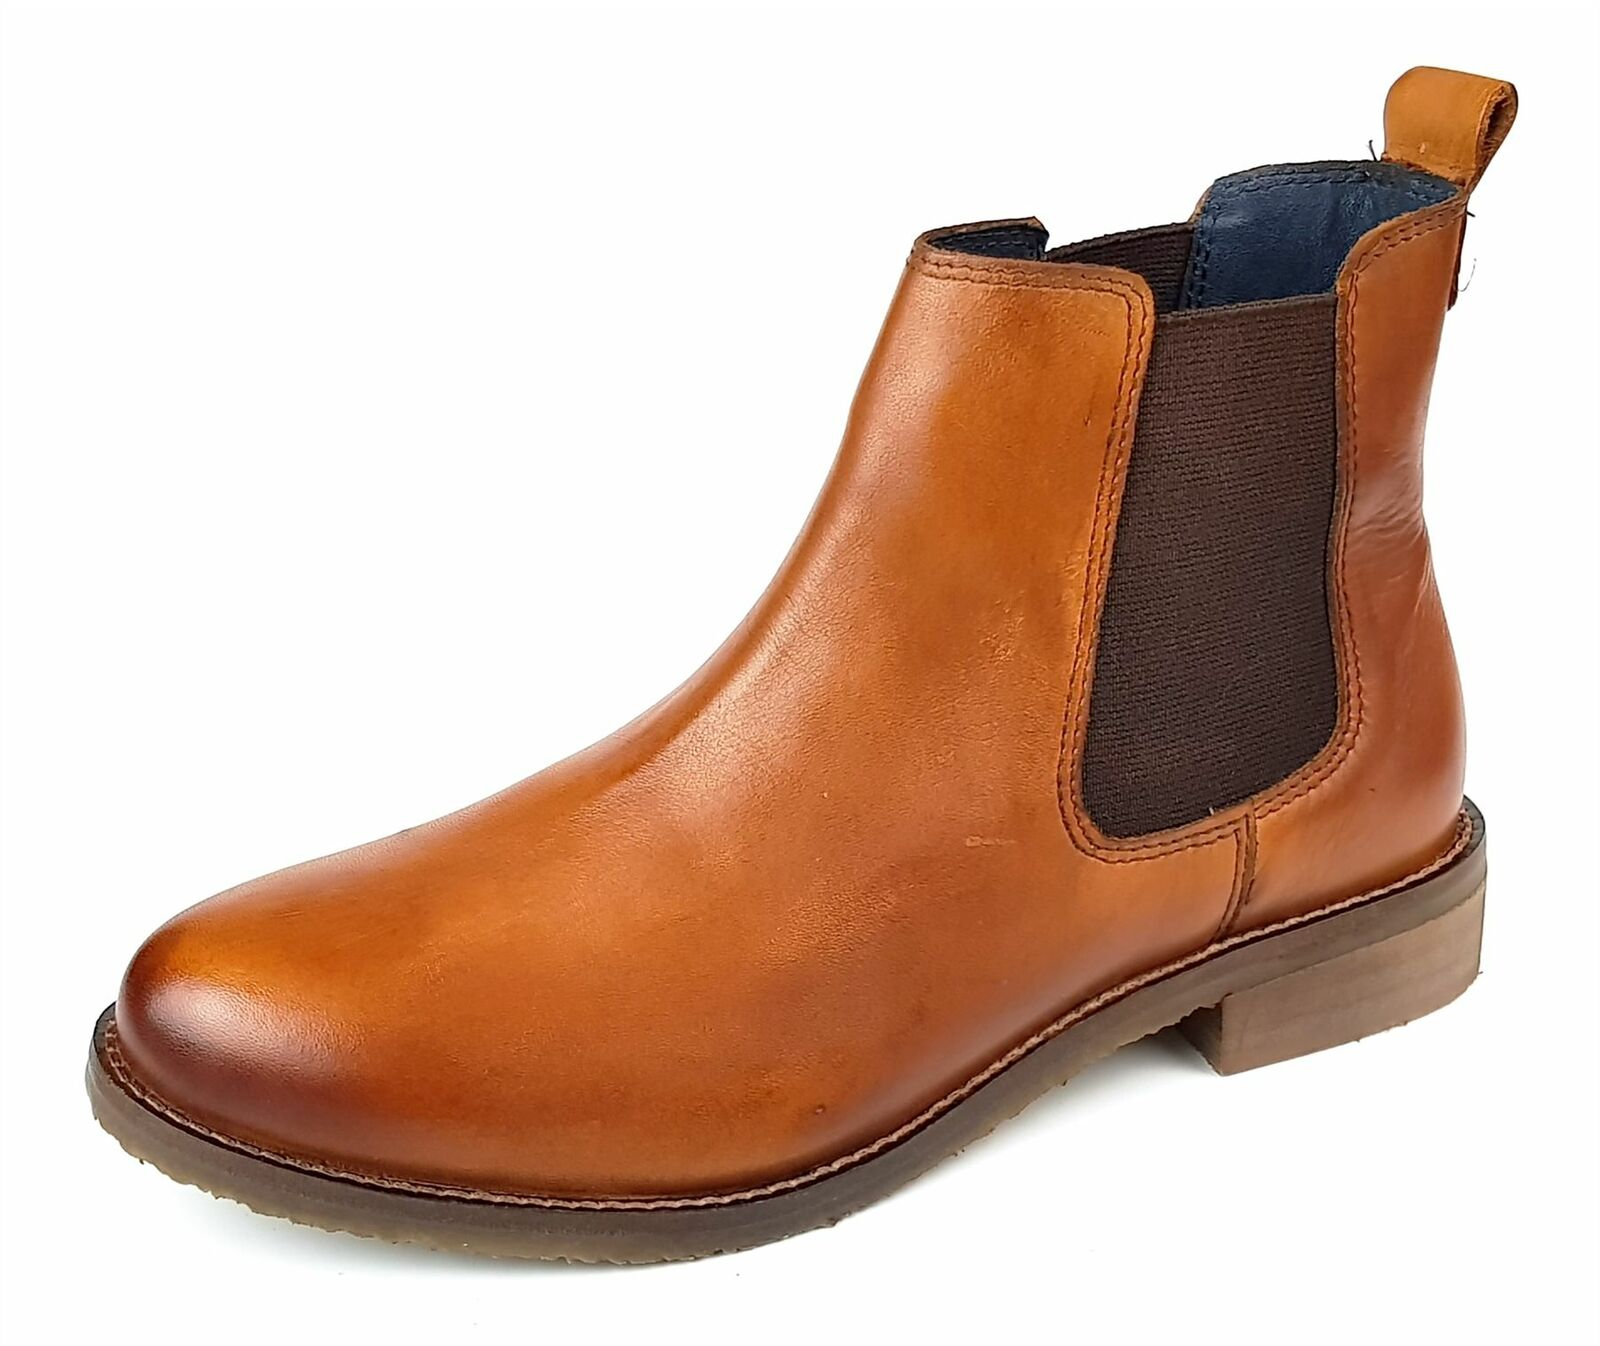 Frank James Aintree Leather Ladies Chelsea Ankle Boots Tan